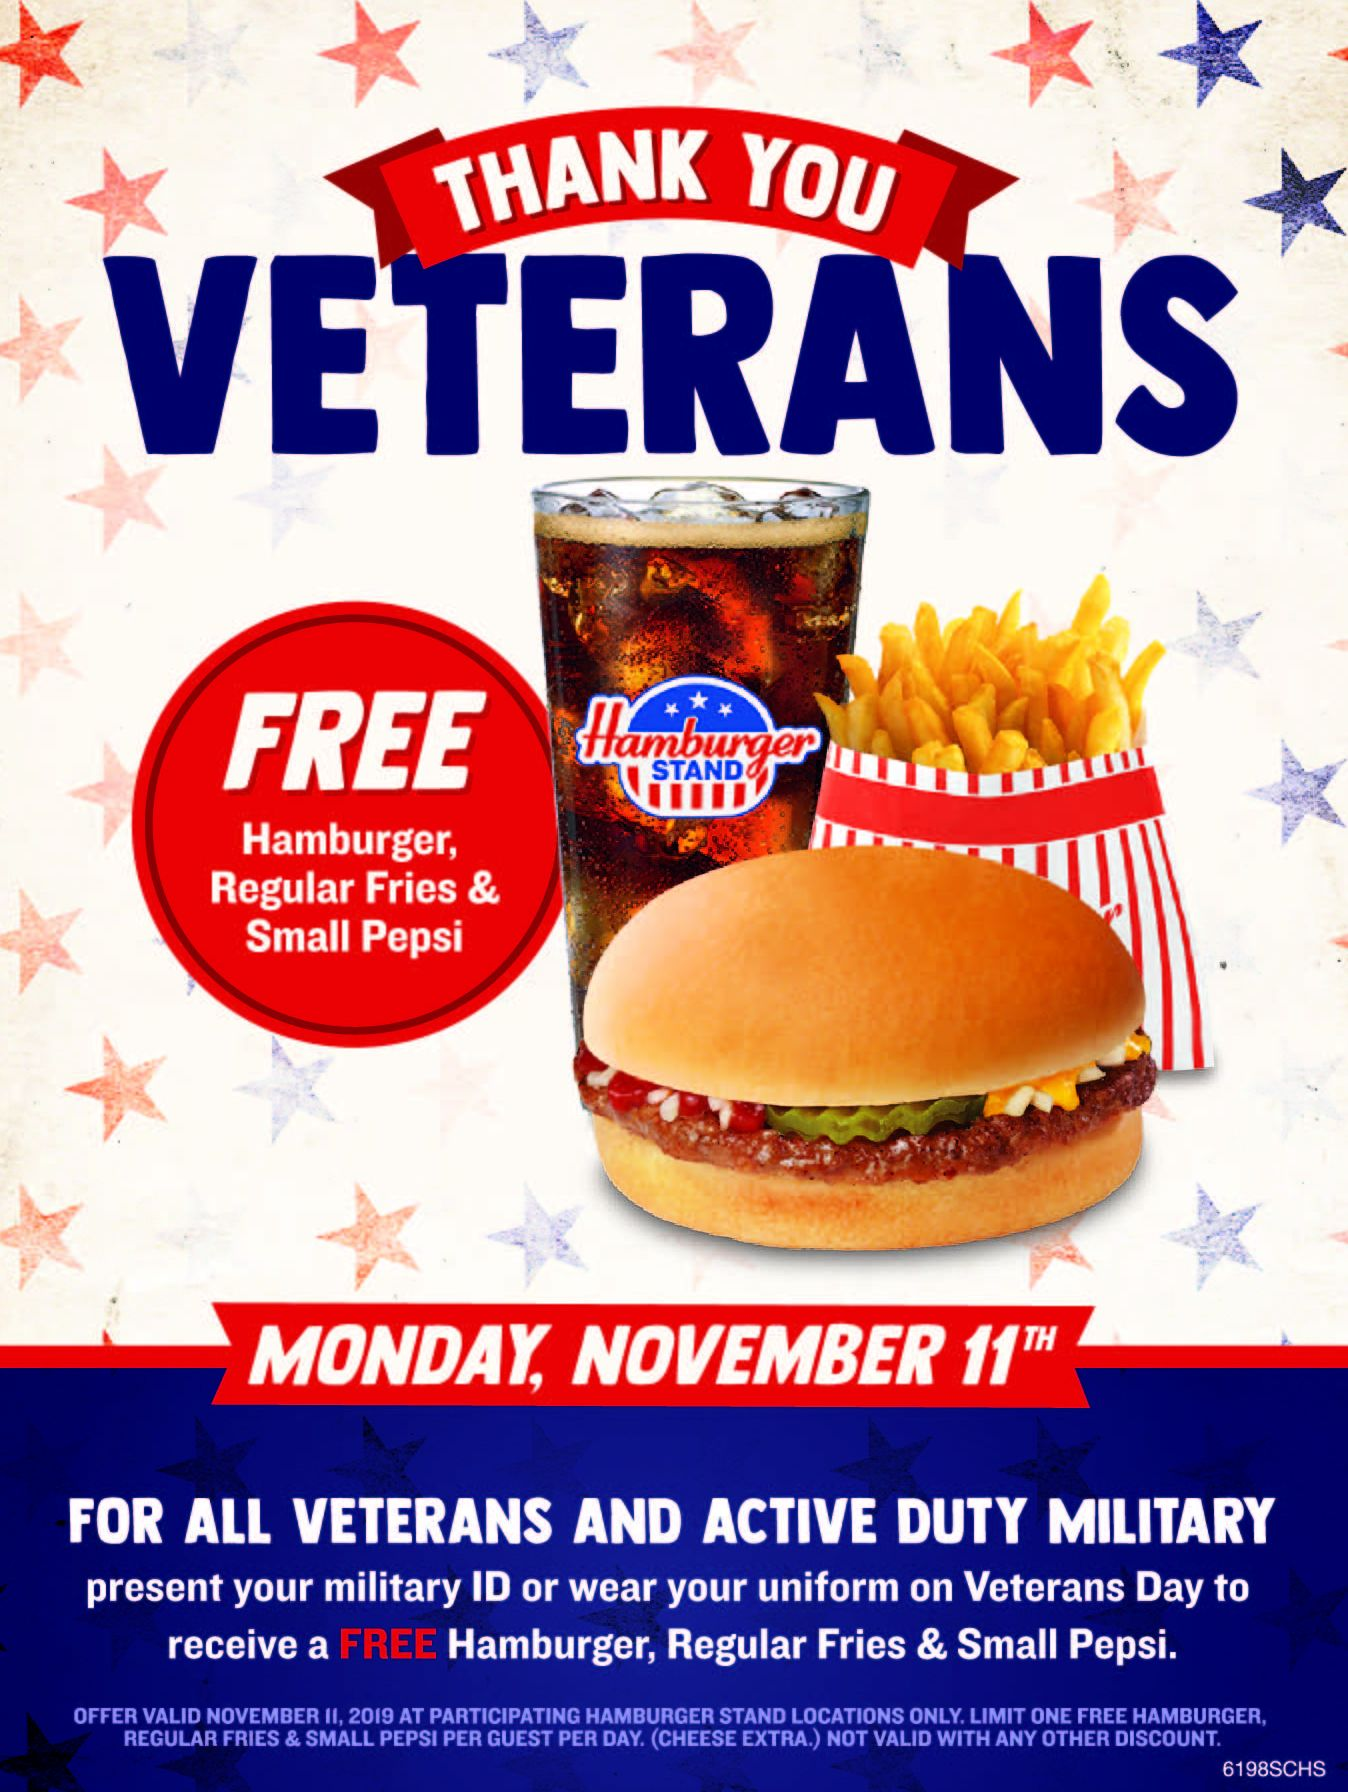 Hamburger Stand Offers Free Meal to Military Members on Veterans Day